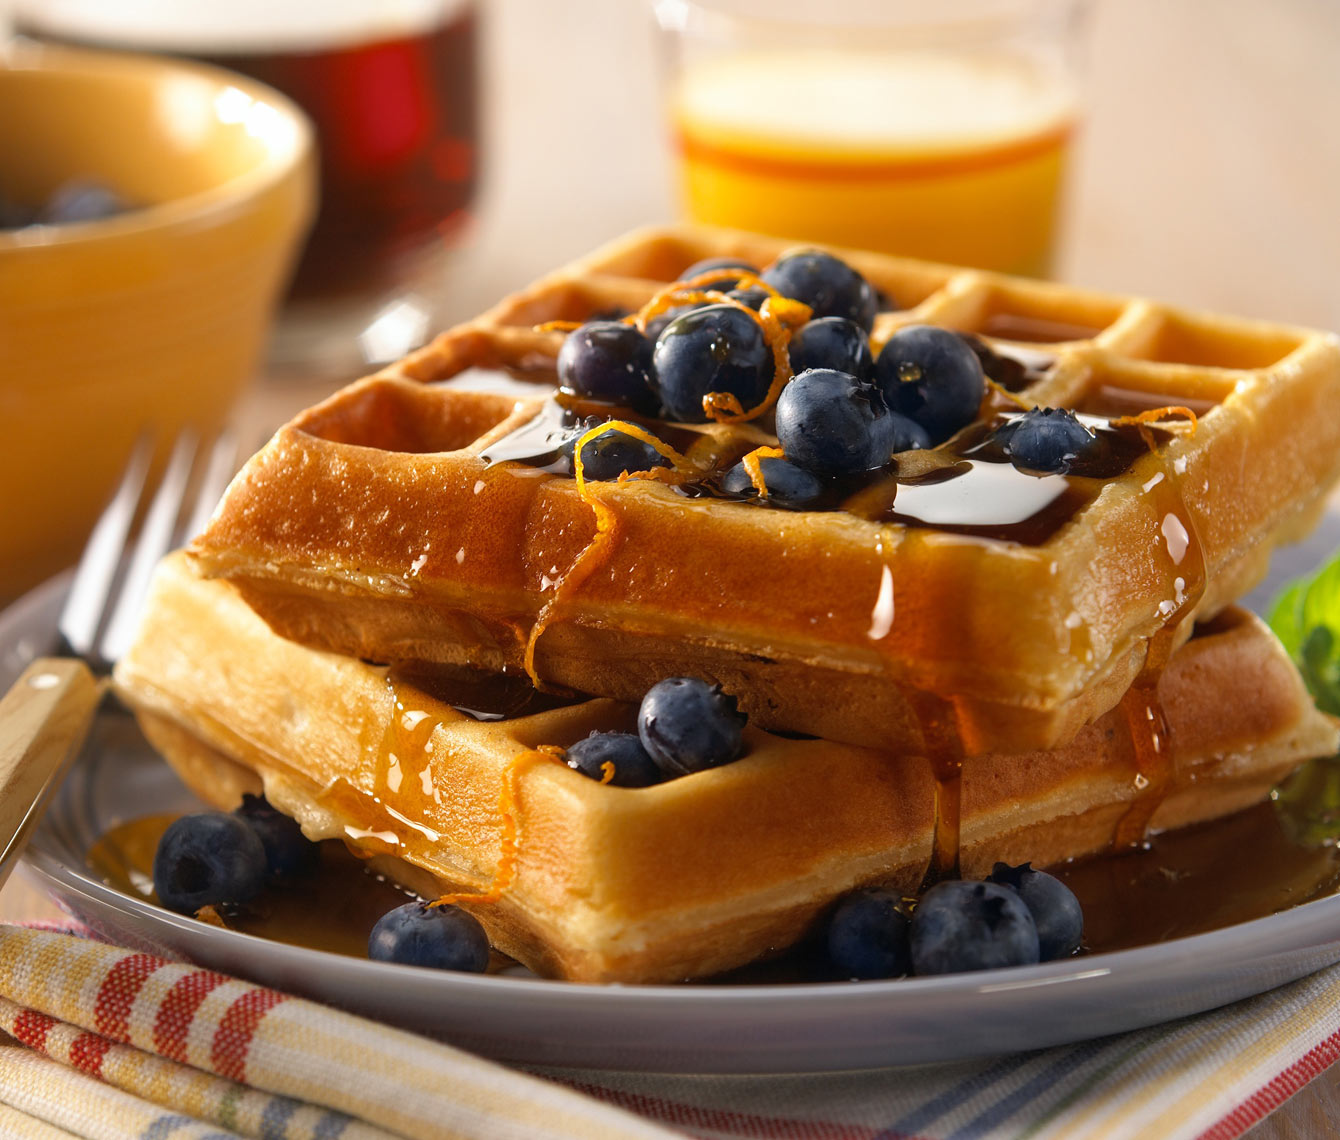 Waffles/blueberries/syrup/food photography